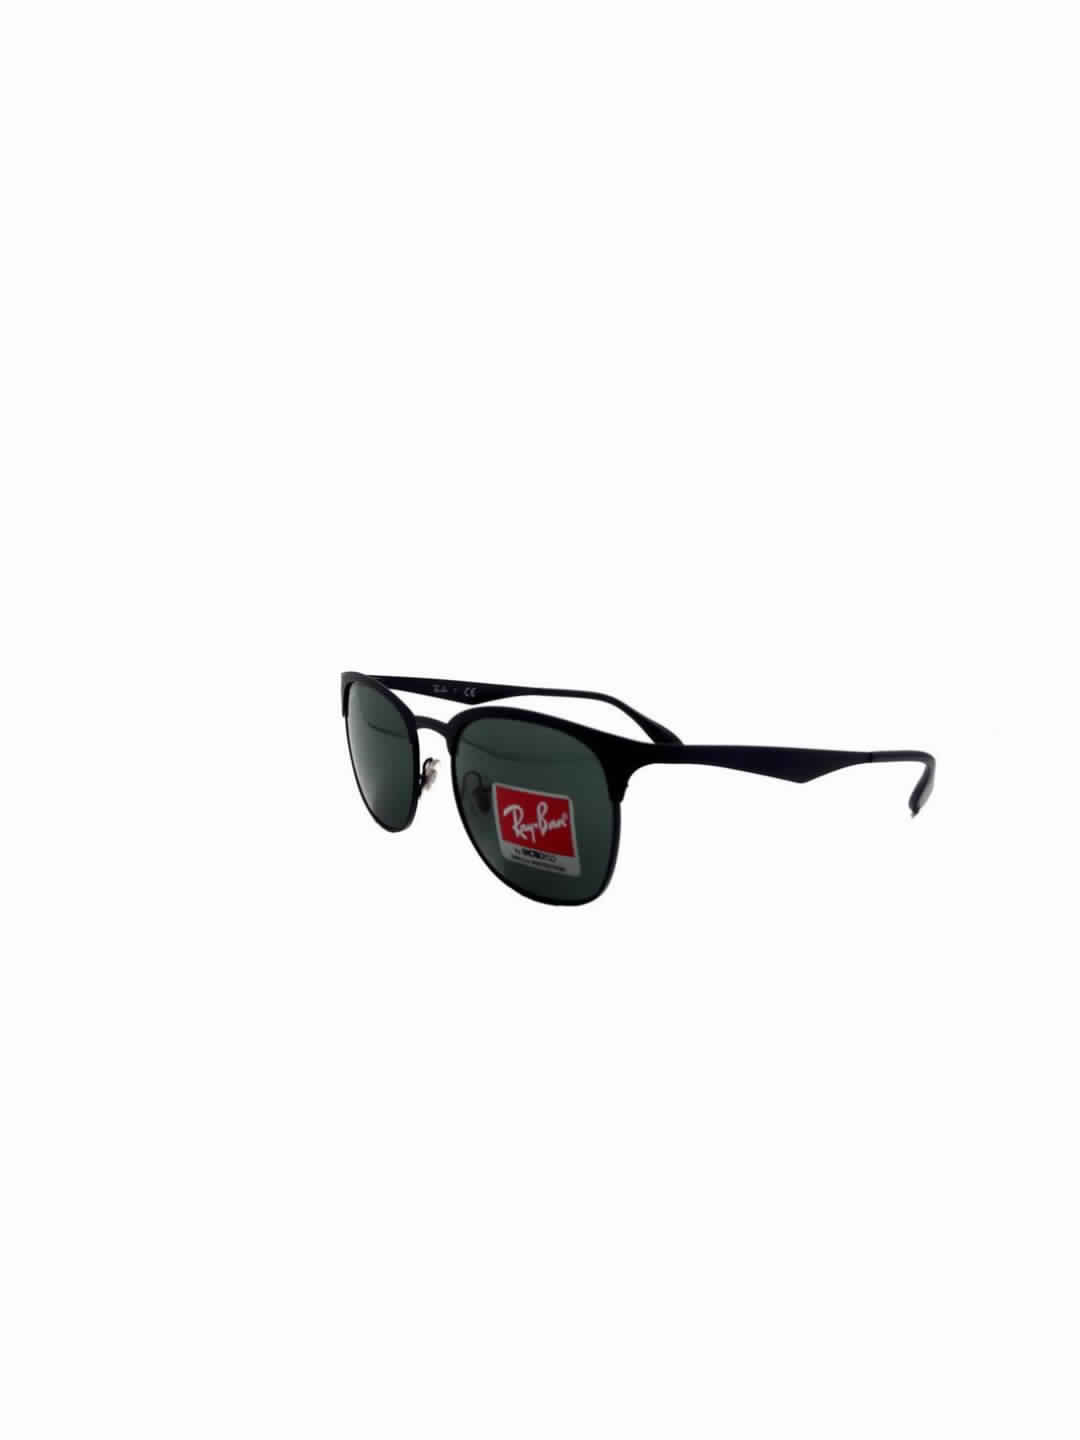 RayBan RB 3538 186/71 3N Club Master Black Full Frame With Stainless Steel